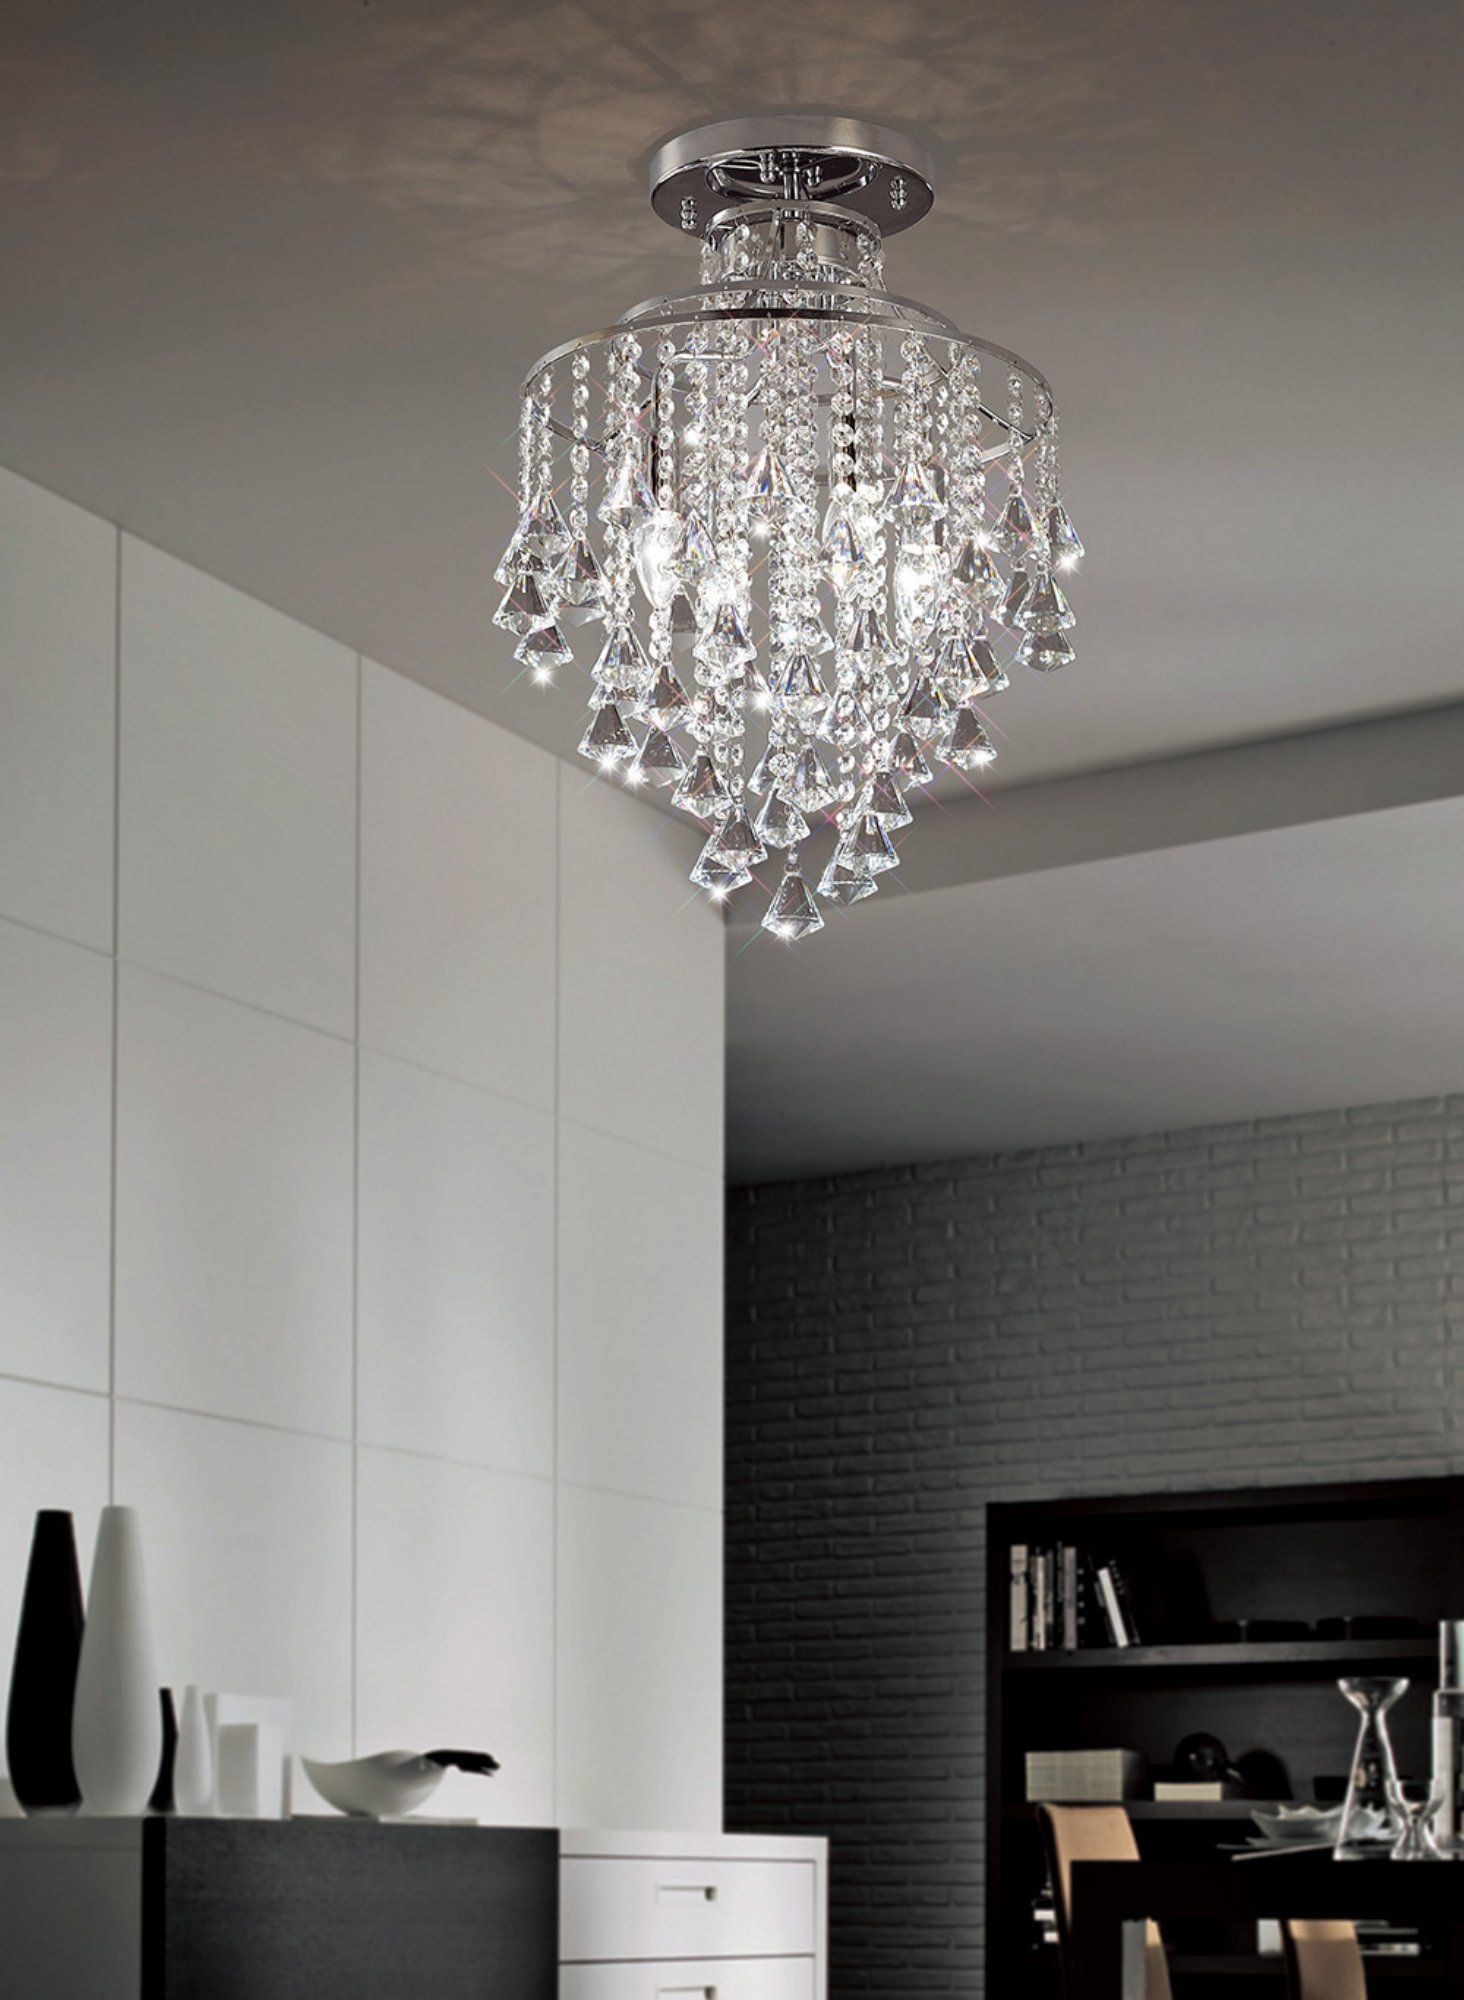 34 Unbelievable Dining Room Chandelier Low Ceiling To Make Your Home Cozier Low Ceiling Chandelier Crystal Ceiling Light Ceiling Lights Chandelier for low ceiling living room